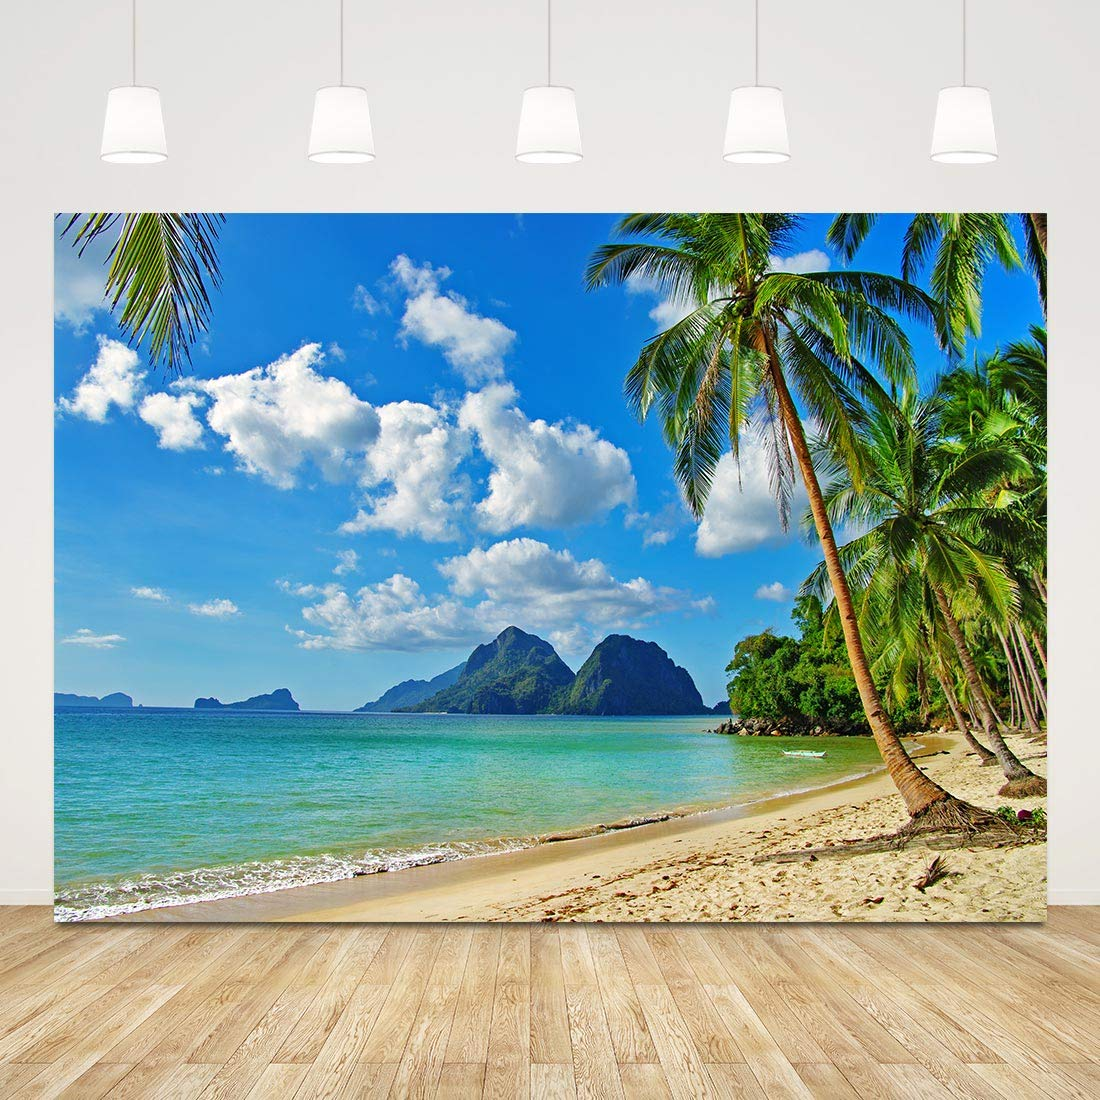 Haoyiyi 10x6.5ft Tropical Beach Background Green Palm Leaves Island Sand Nautical Pirate Jewelry Backdrop Photography Photo Birthday Party Events Travel Summer Holiday Banner Decoration